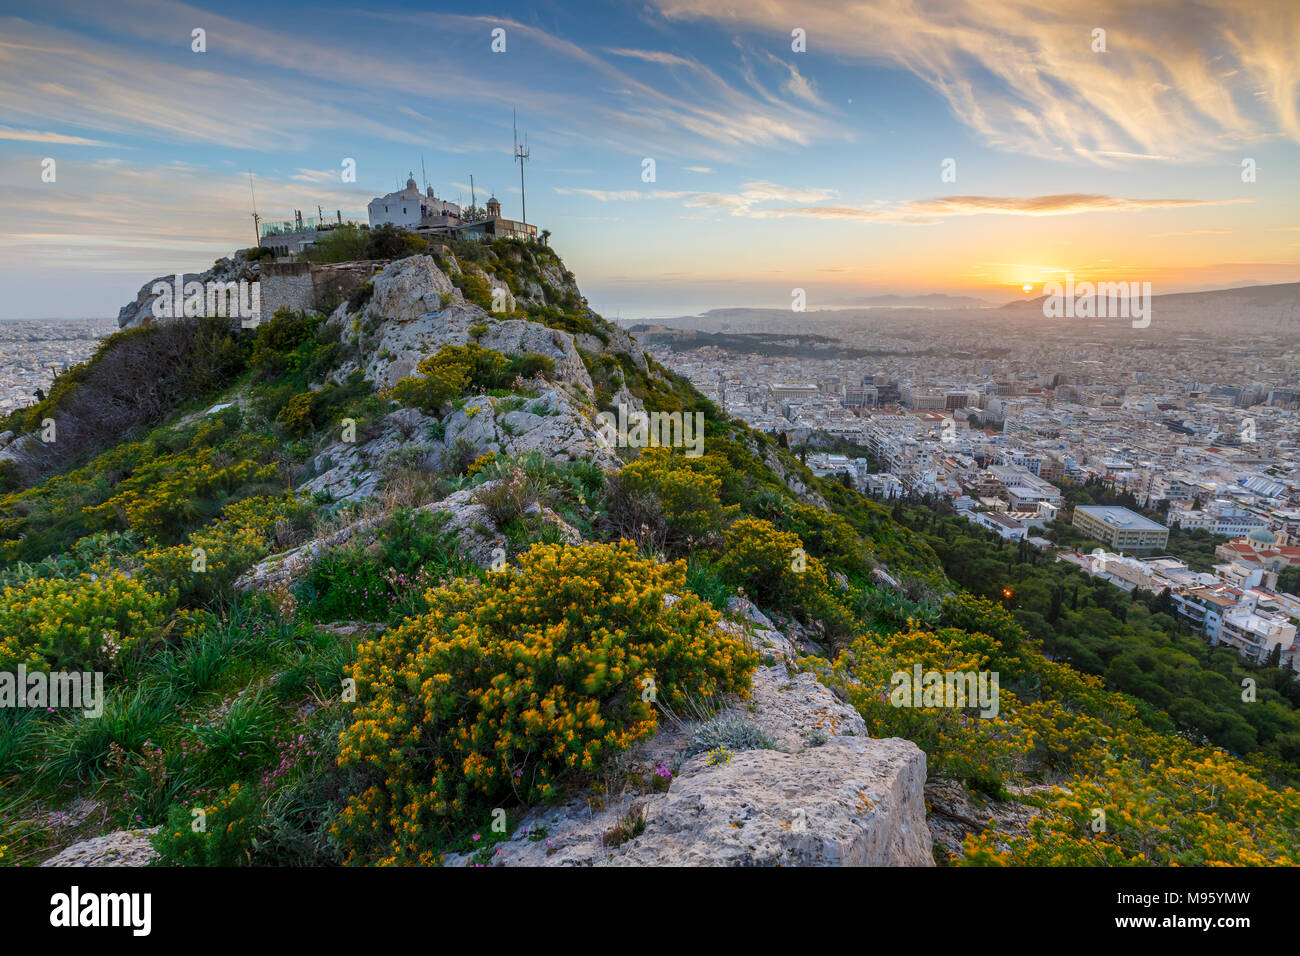 View of Athens from Lycabettus hill at sunset, Greece. Stock Photo